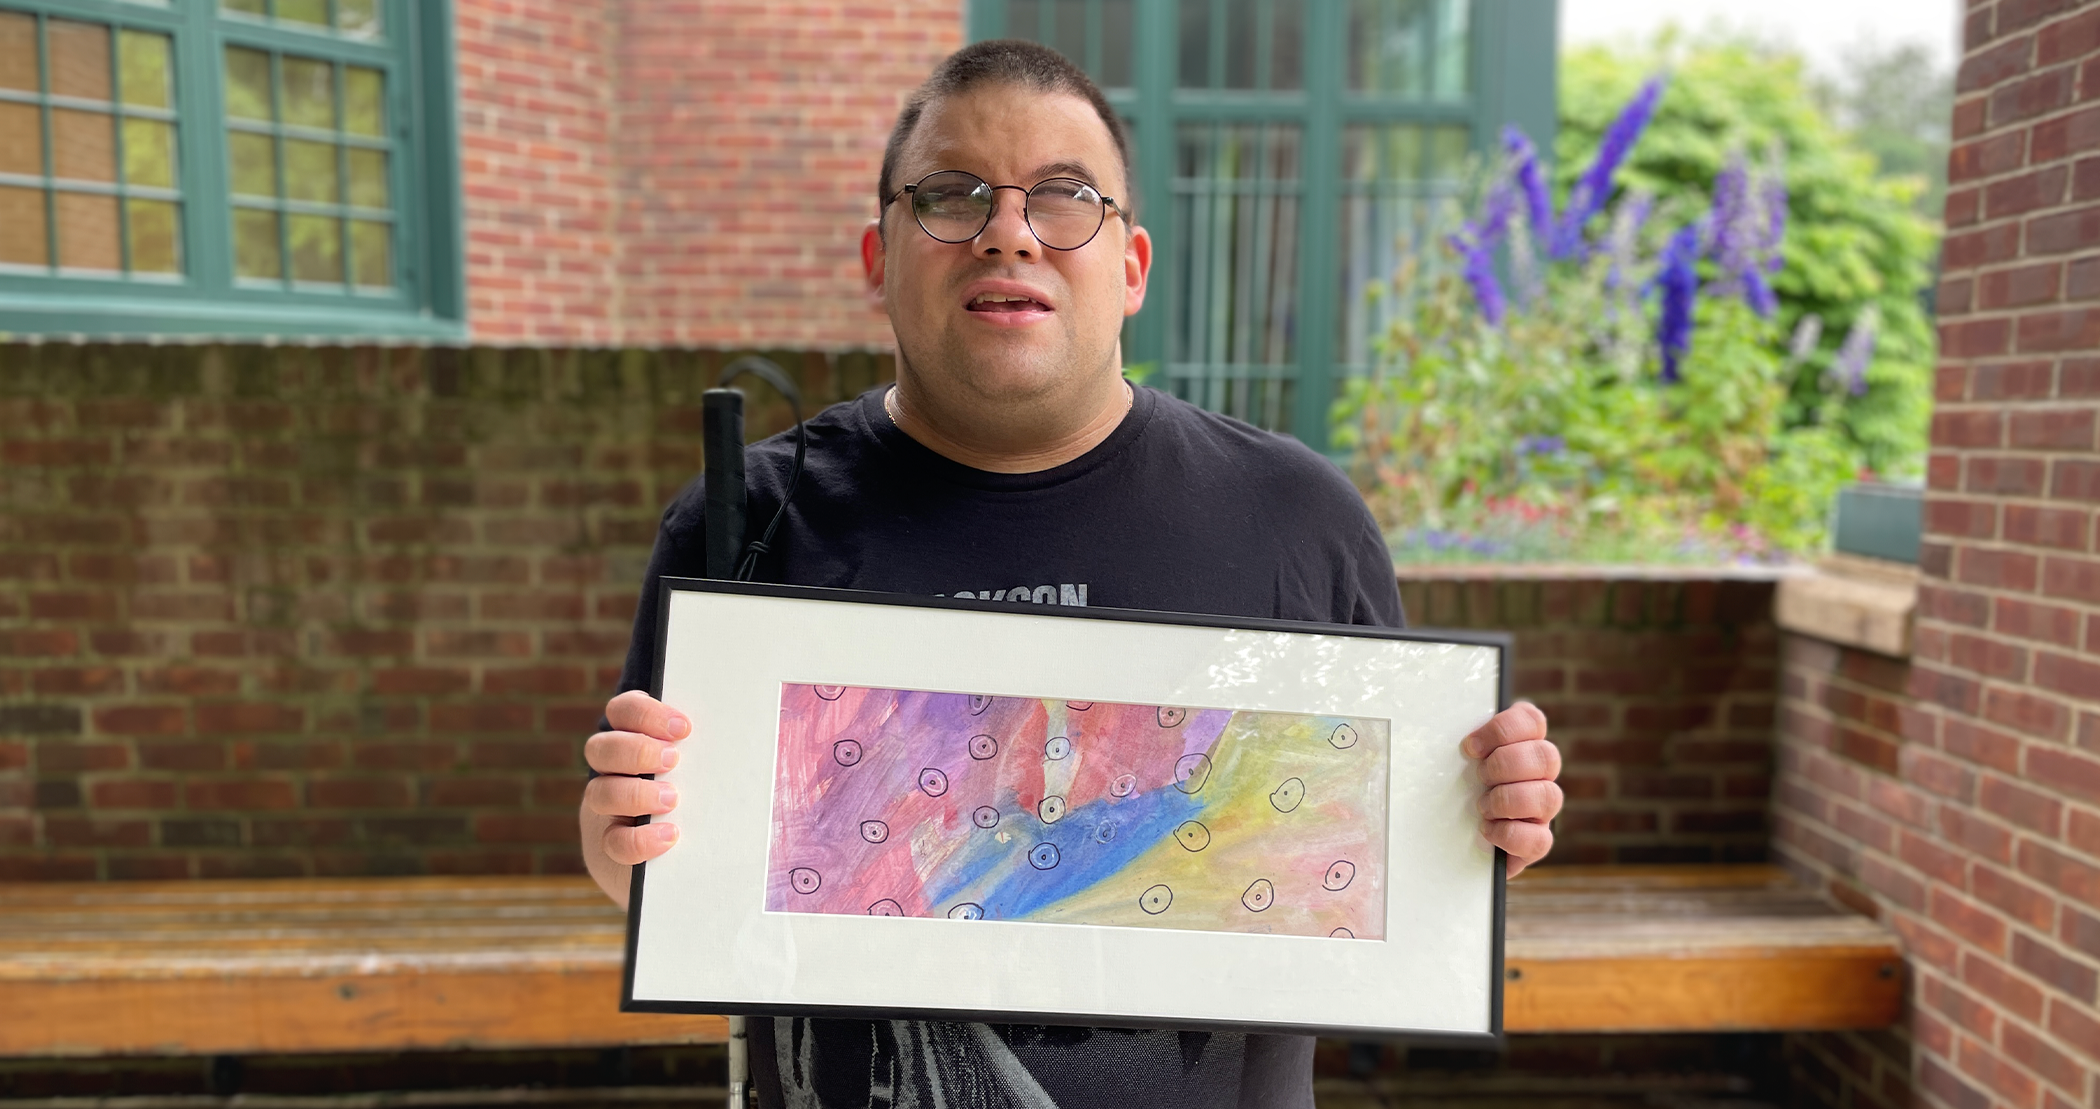 Image description: CATA artist Anthony smiles and holds his framed painting outside